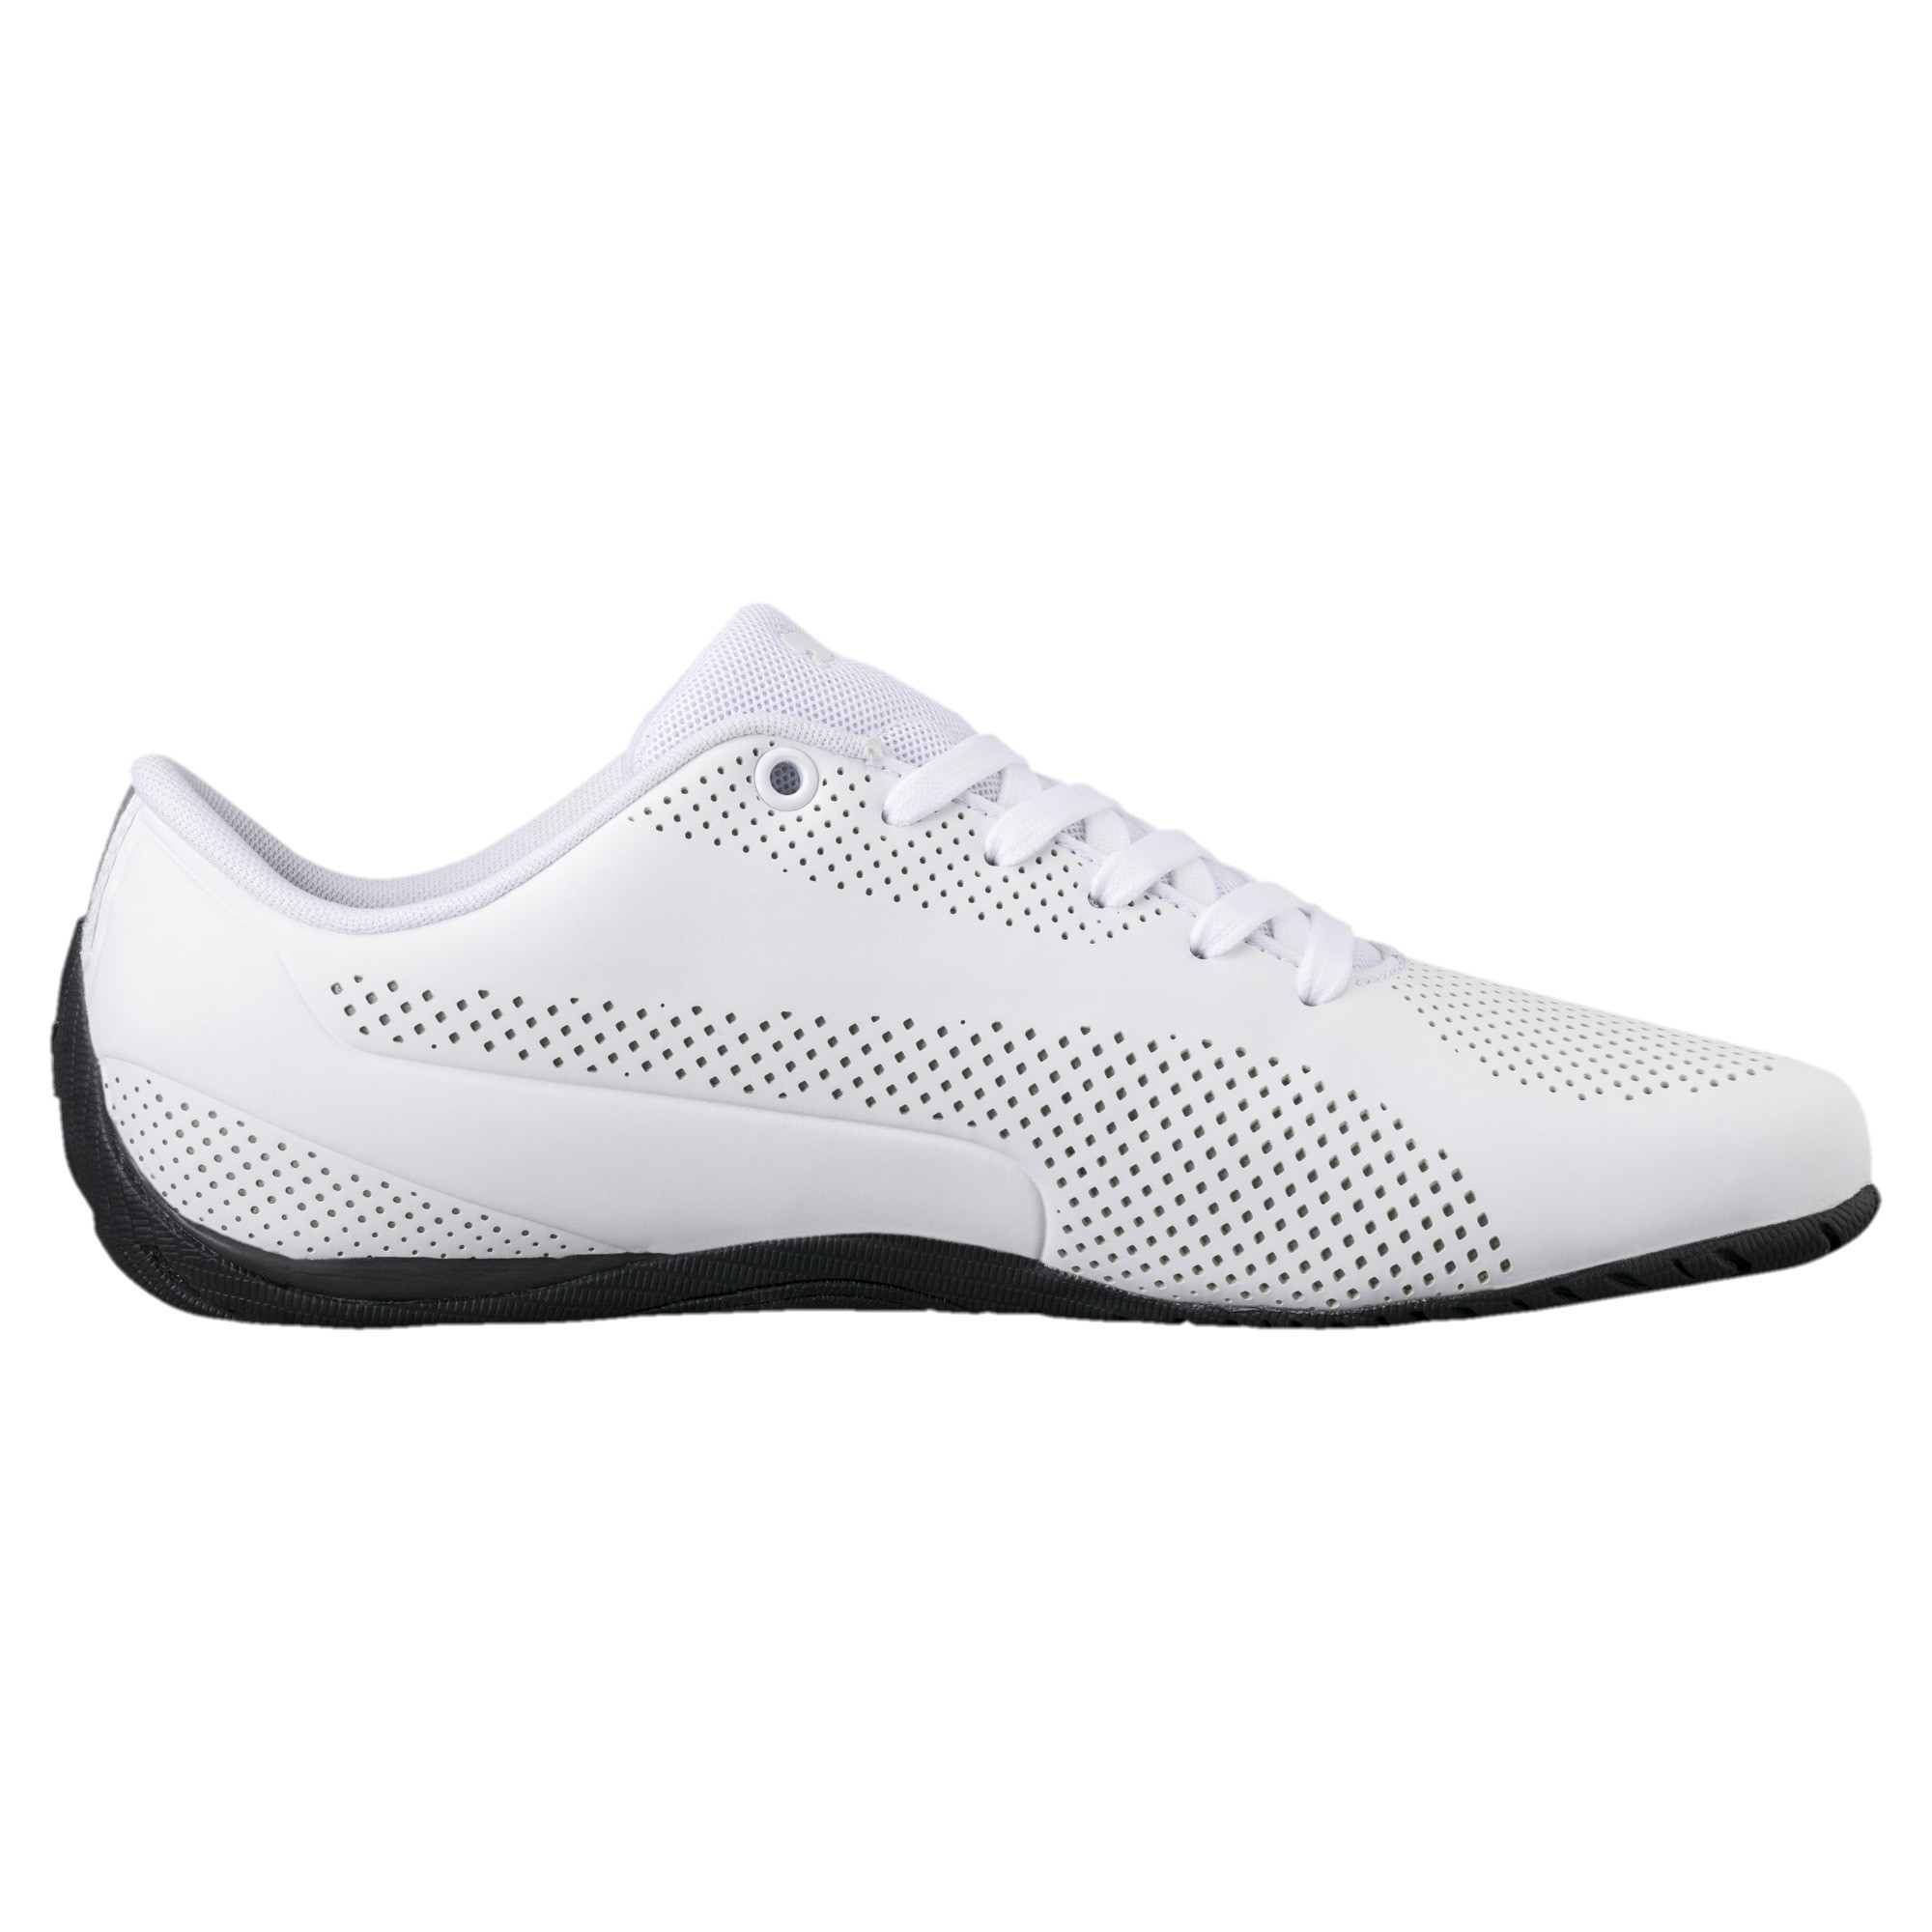 PUMA-Drift-Cat-Ultra-Reflective-Men-039-s-Shoes-Men-Shoe-Sport-Classics miniatura 15